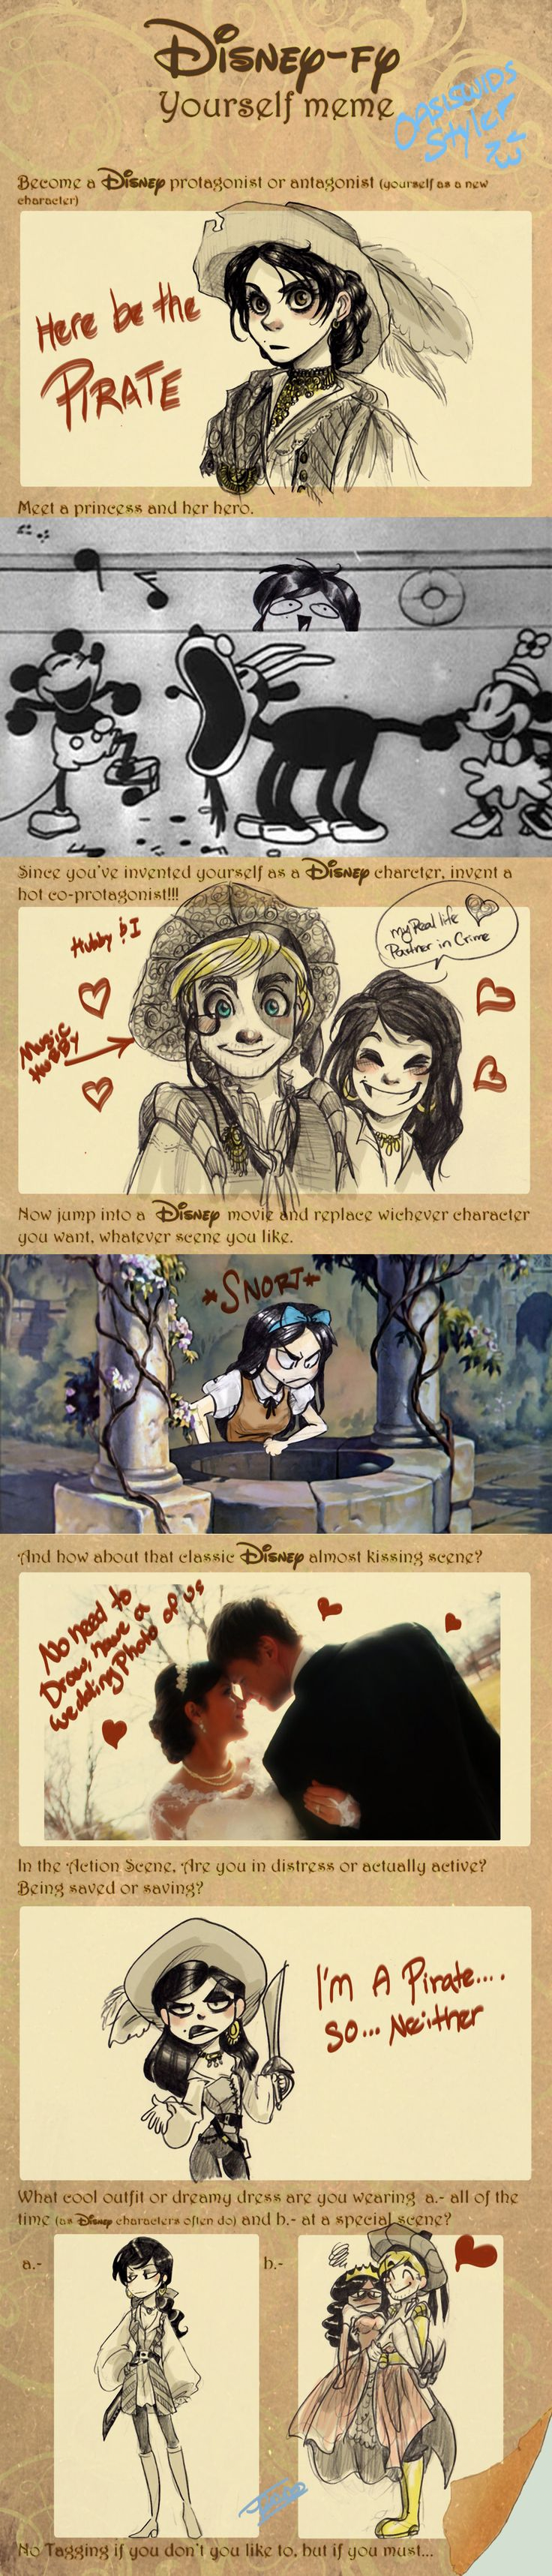 disney-fy yourself meme Oasiswinds by oasiswinds on DeviantArt <-- ok, yes, I'm obsessed with these..